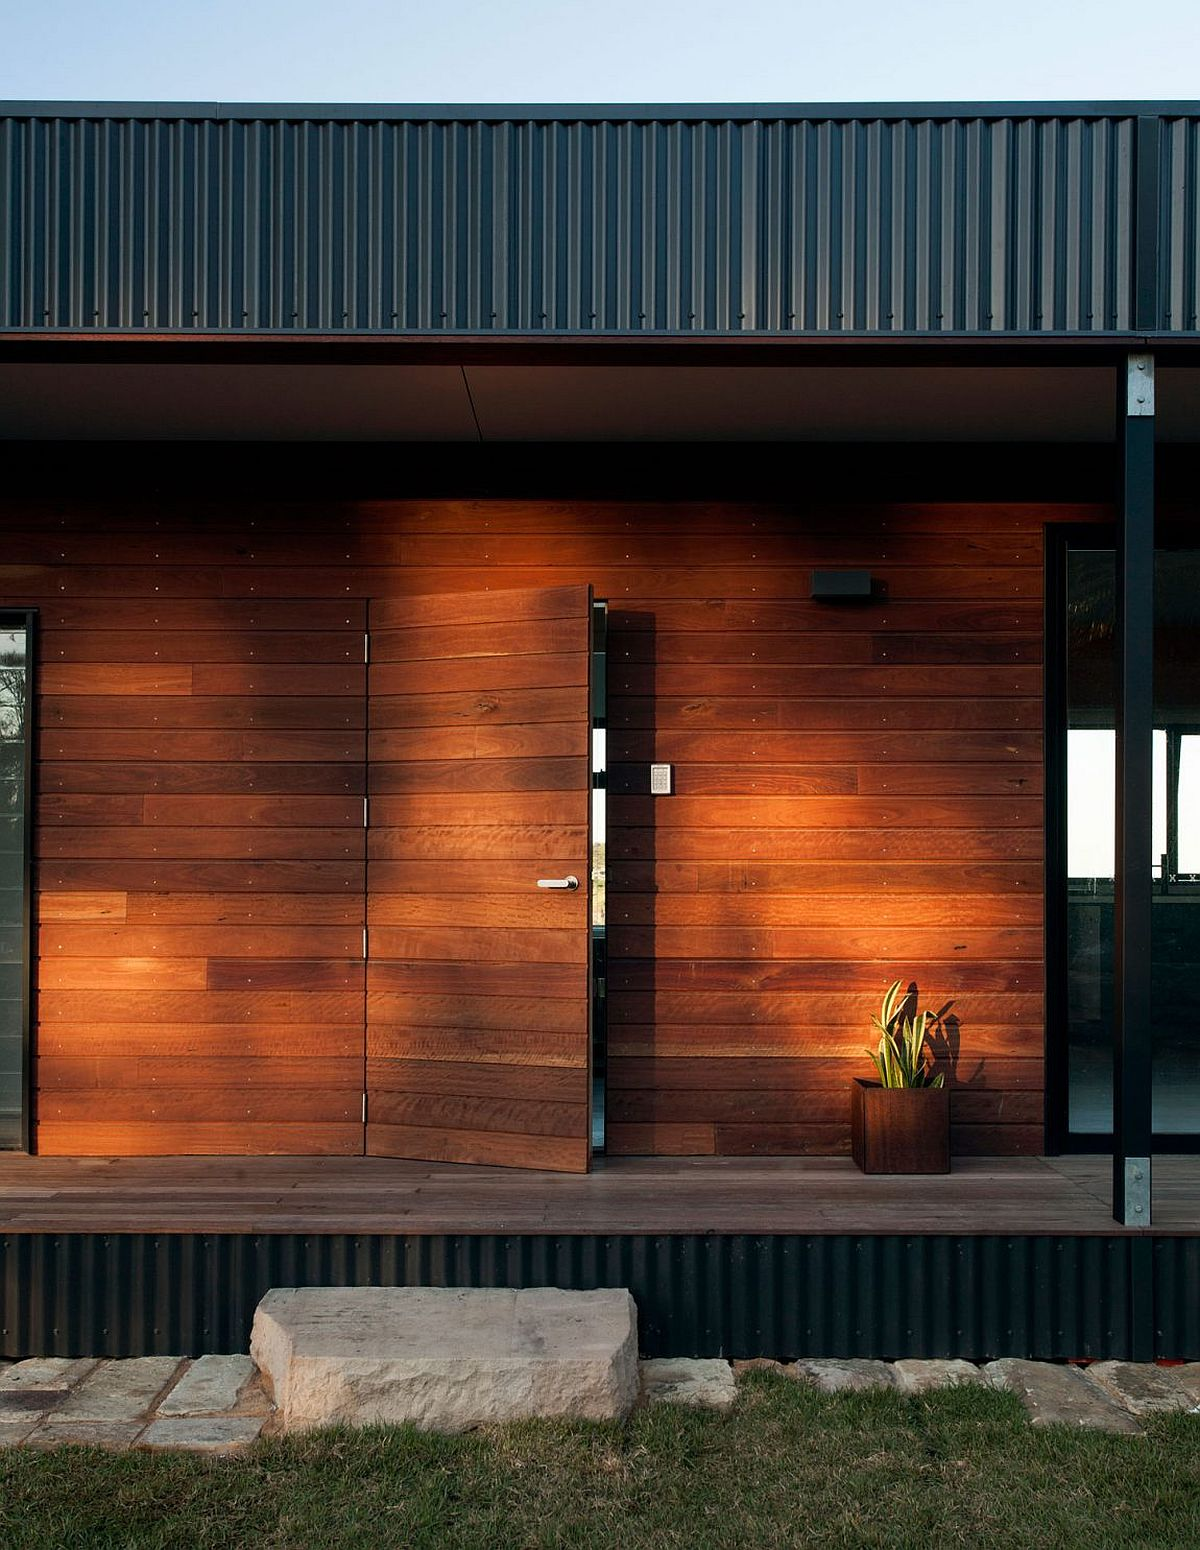 Timber milled from sustainable forests shapes the fabulous home